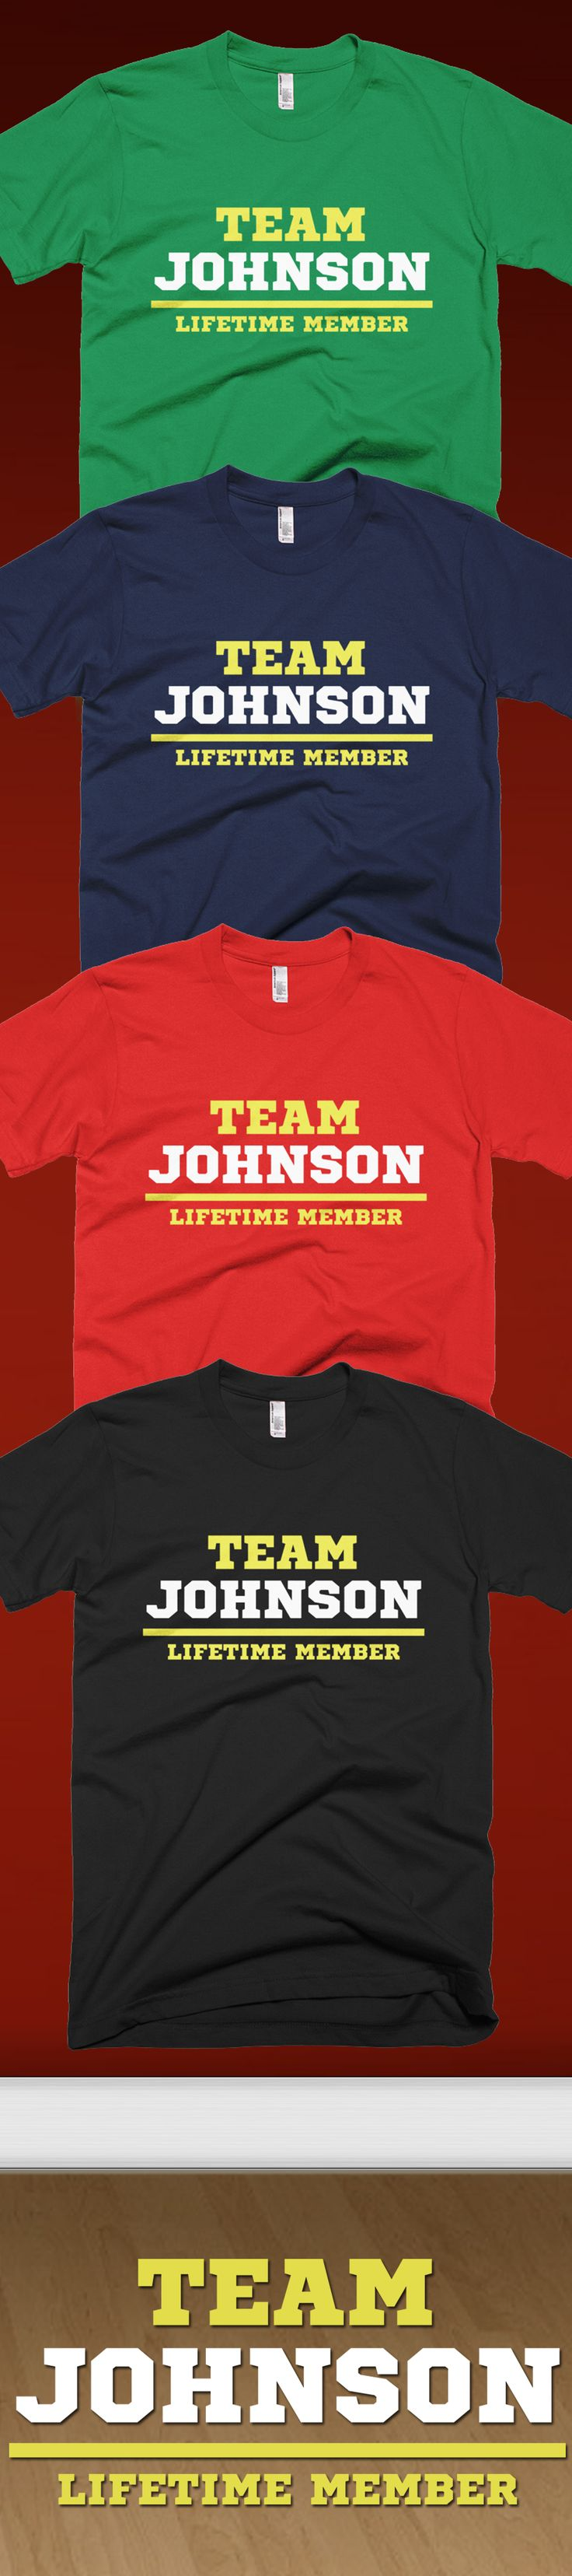 Is your Family name is Johnson?! Check out this awesome Team Johnson, Life Time Member t-shirt you will not find anywhere else. Not sold in stores and only 2 days left for free shipping! Grab yours or gift it to a friend, you will both love it 😘